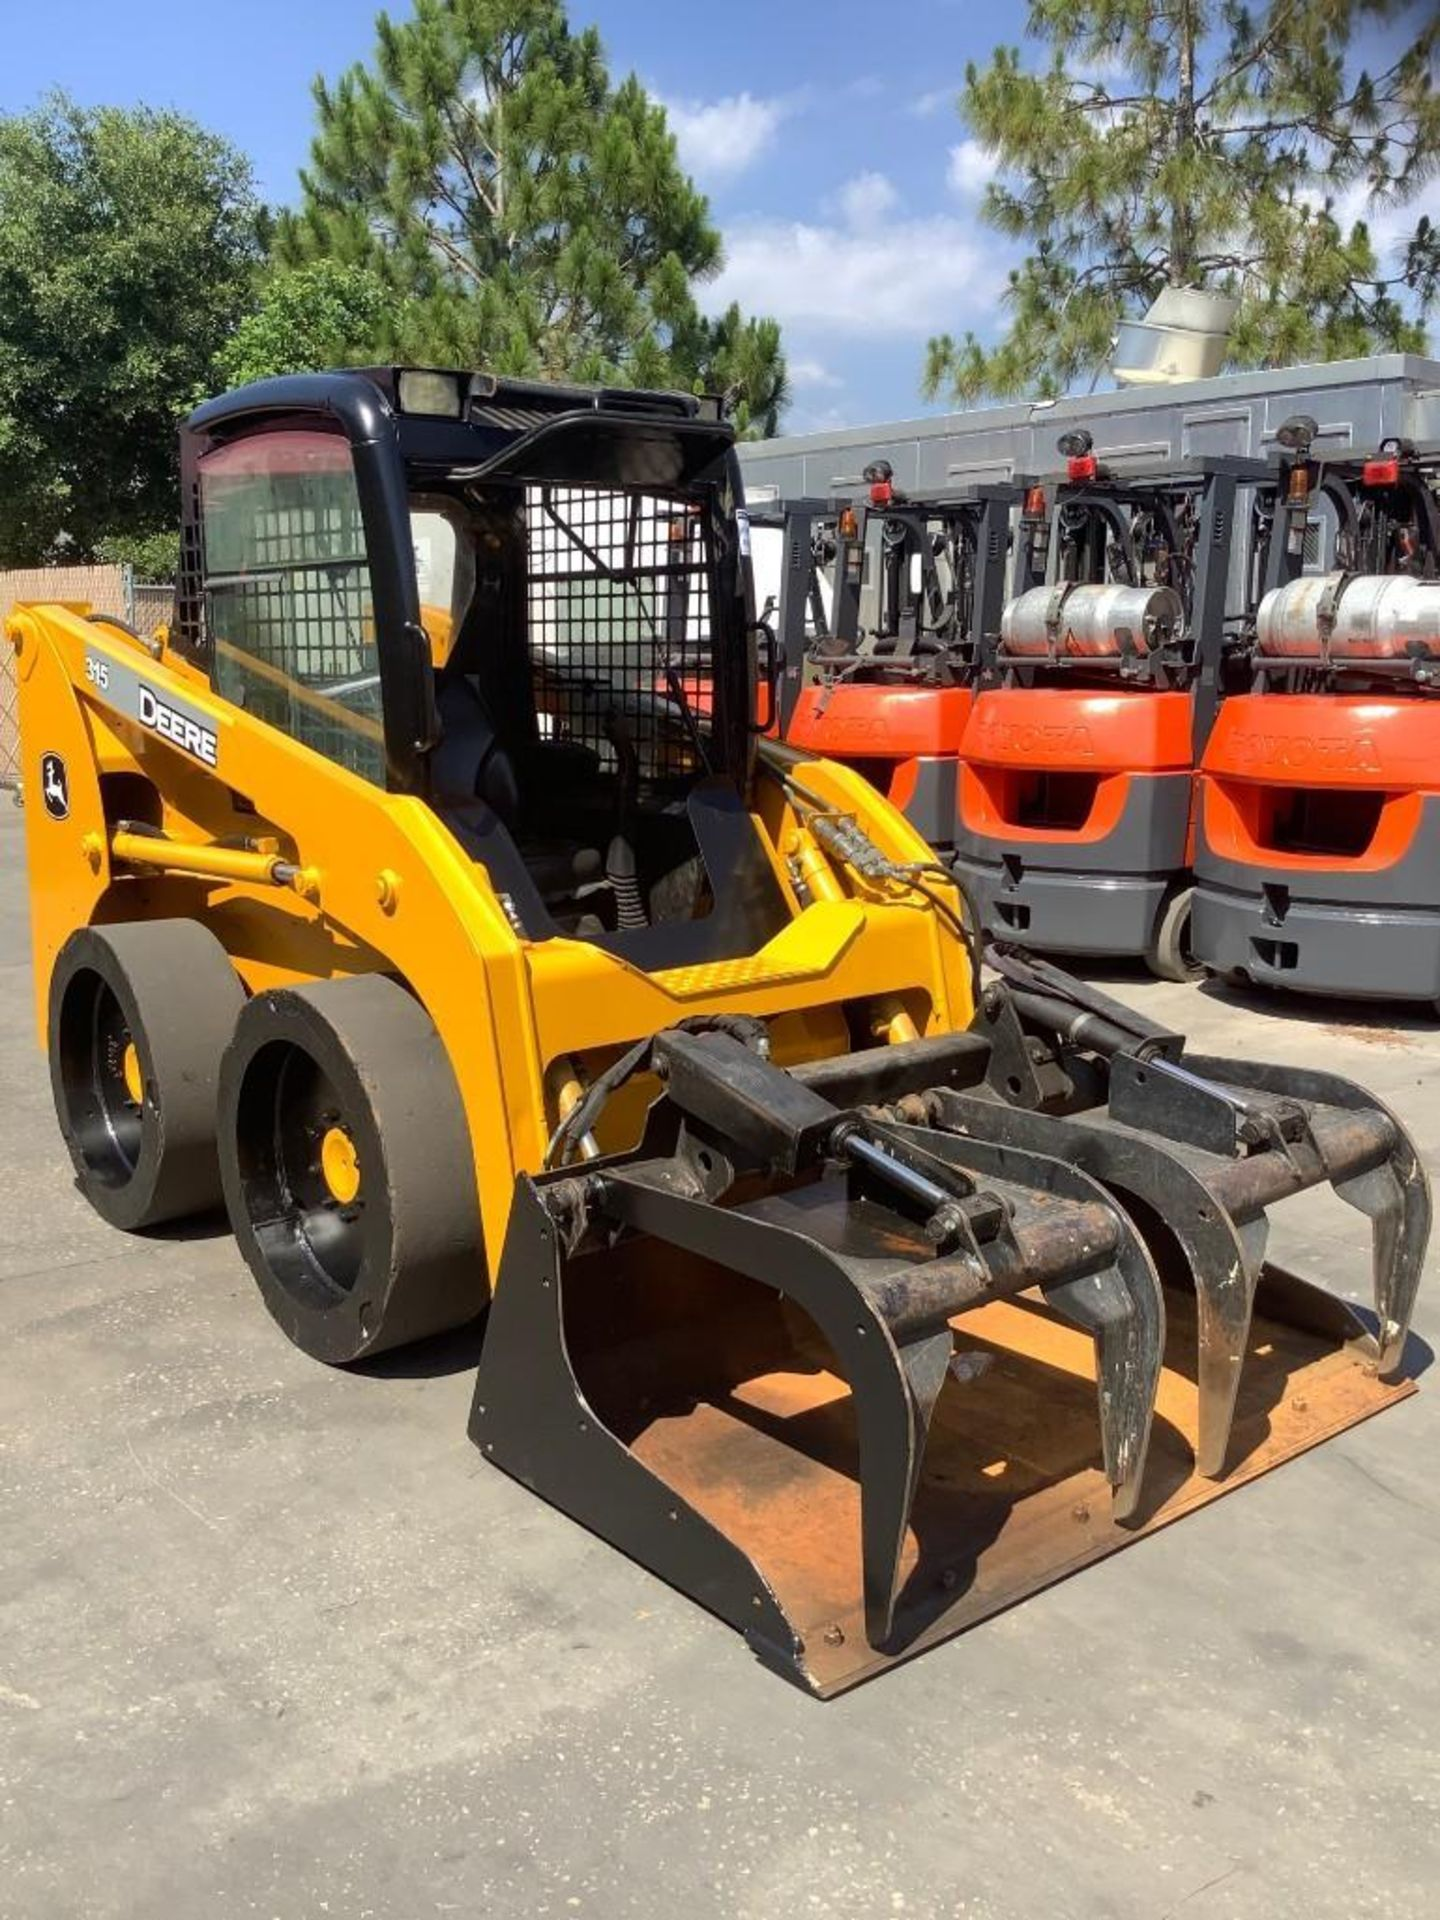 JOHN DEERE SKIDSTEER MODEL 315, DIESEL, GRAPPLE ATTACHMENT, SOLID TIRES, AUX HYDRAULIC, ENCLOSED CAB - Image 2 of 15